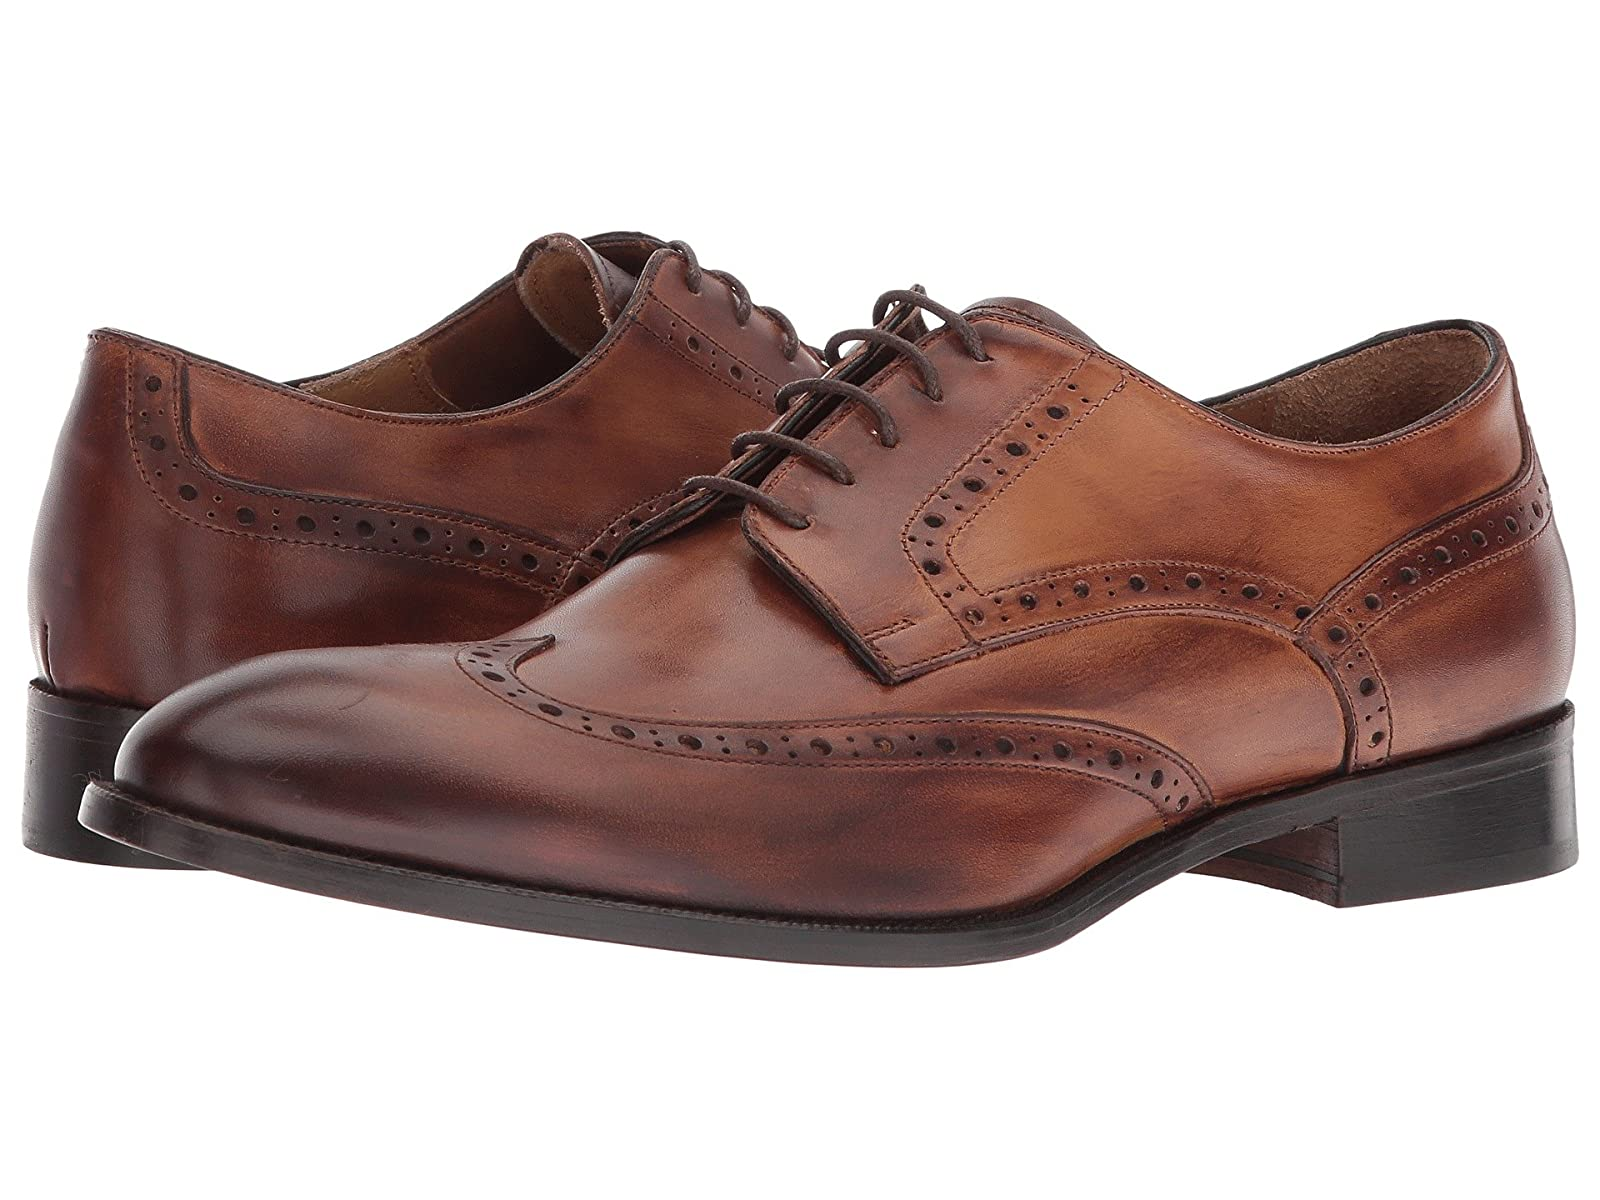 Gordon Rush JacksonAtmospheric grades have affordable shoes